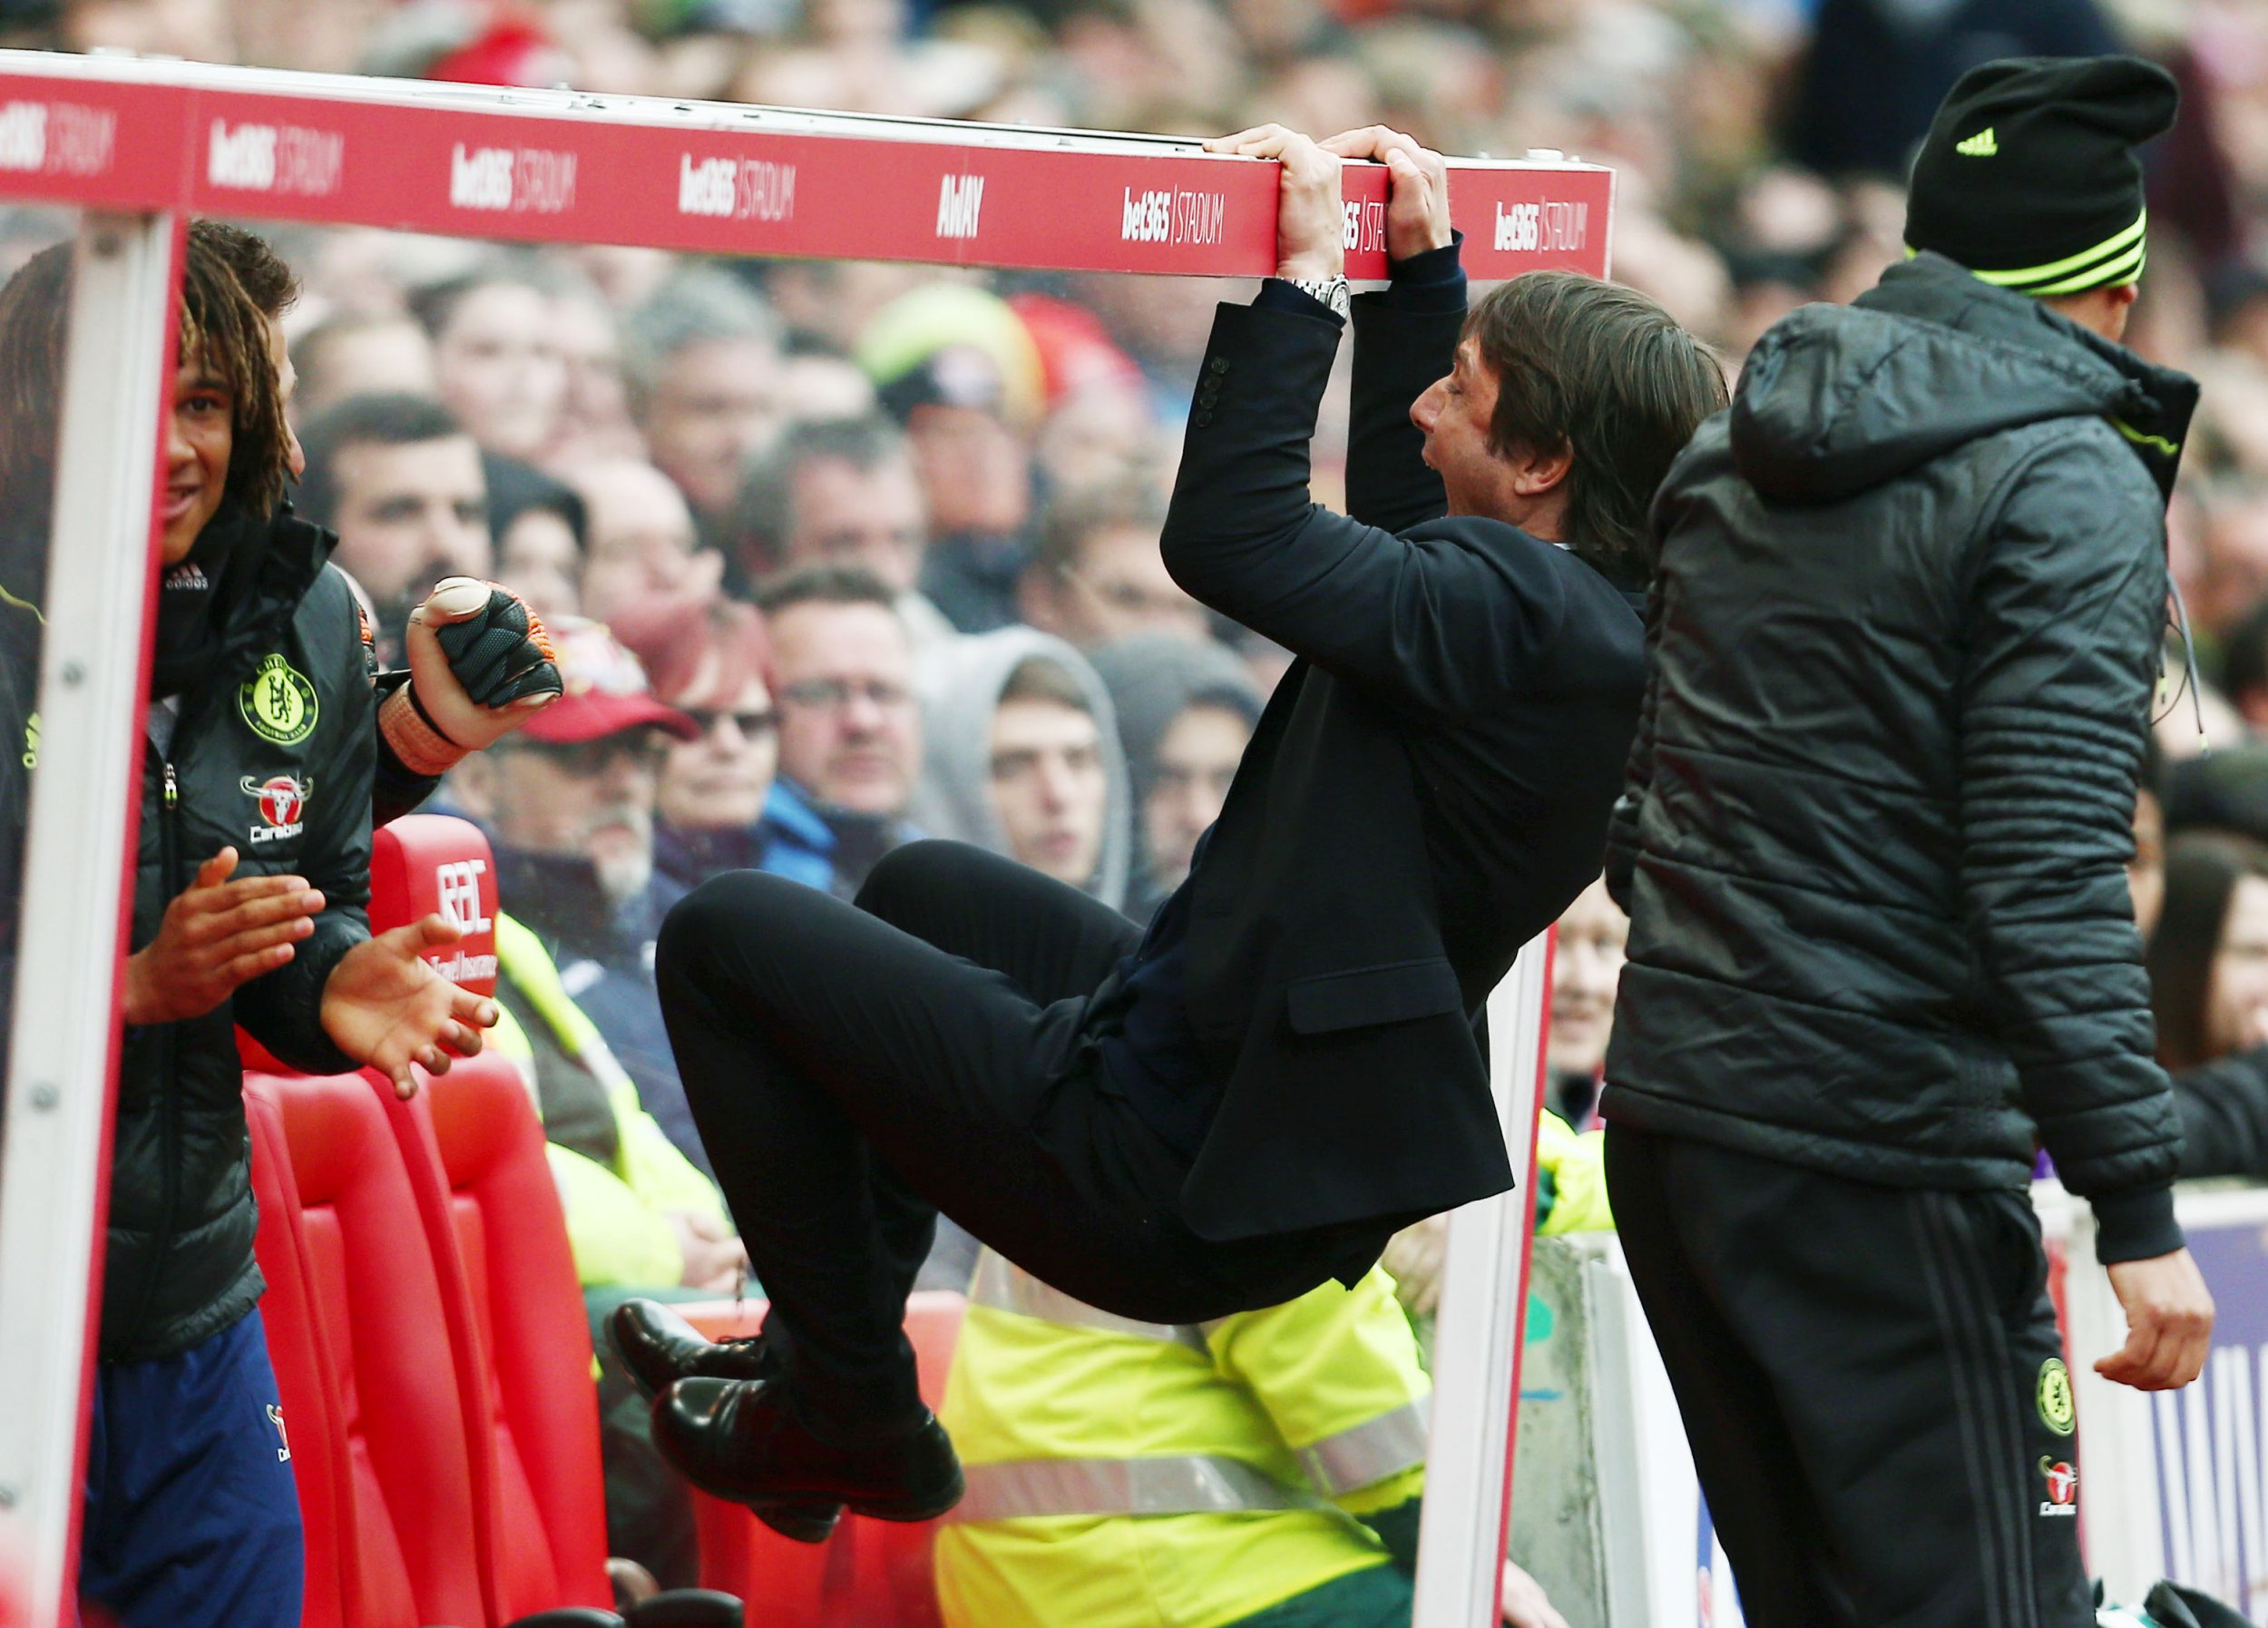 Chelsea manager Antonio Conte celebrates his teams goal to make it 1-2 during the Premier League match between Stoke City and Chelsea played at the bet365 Stadium, Stoke, on 18th March 2017